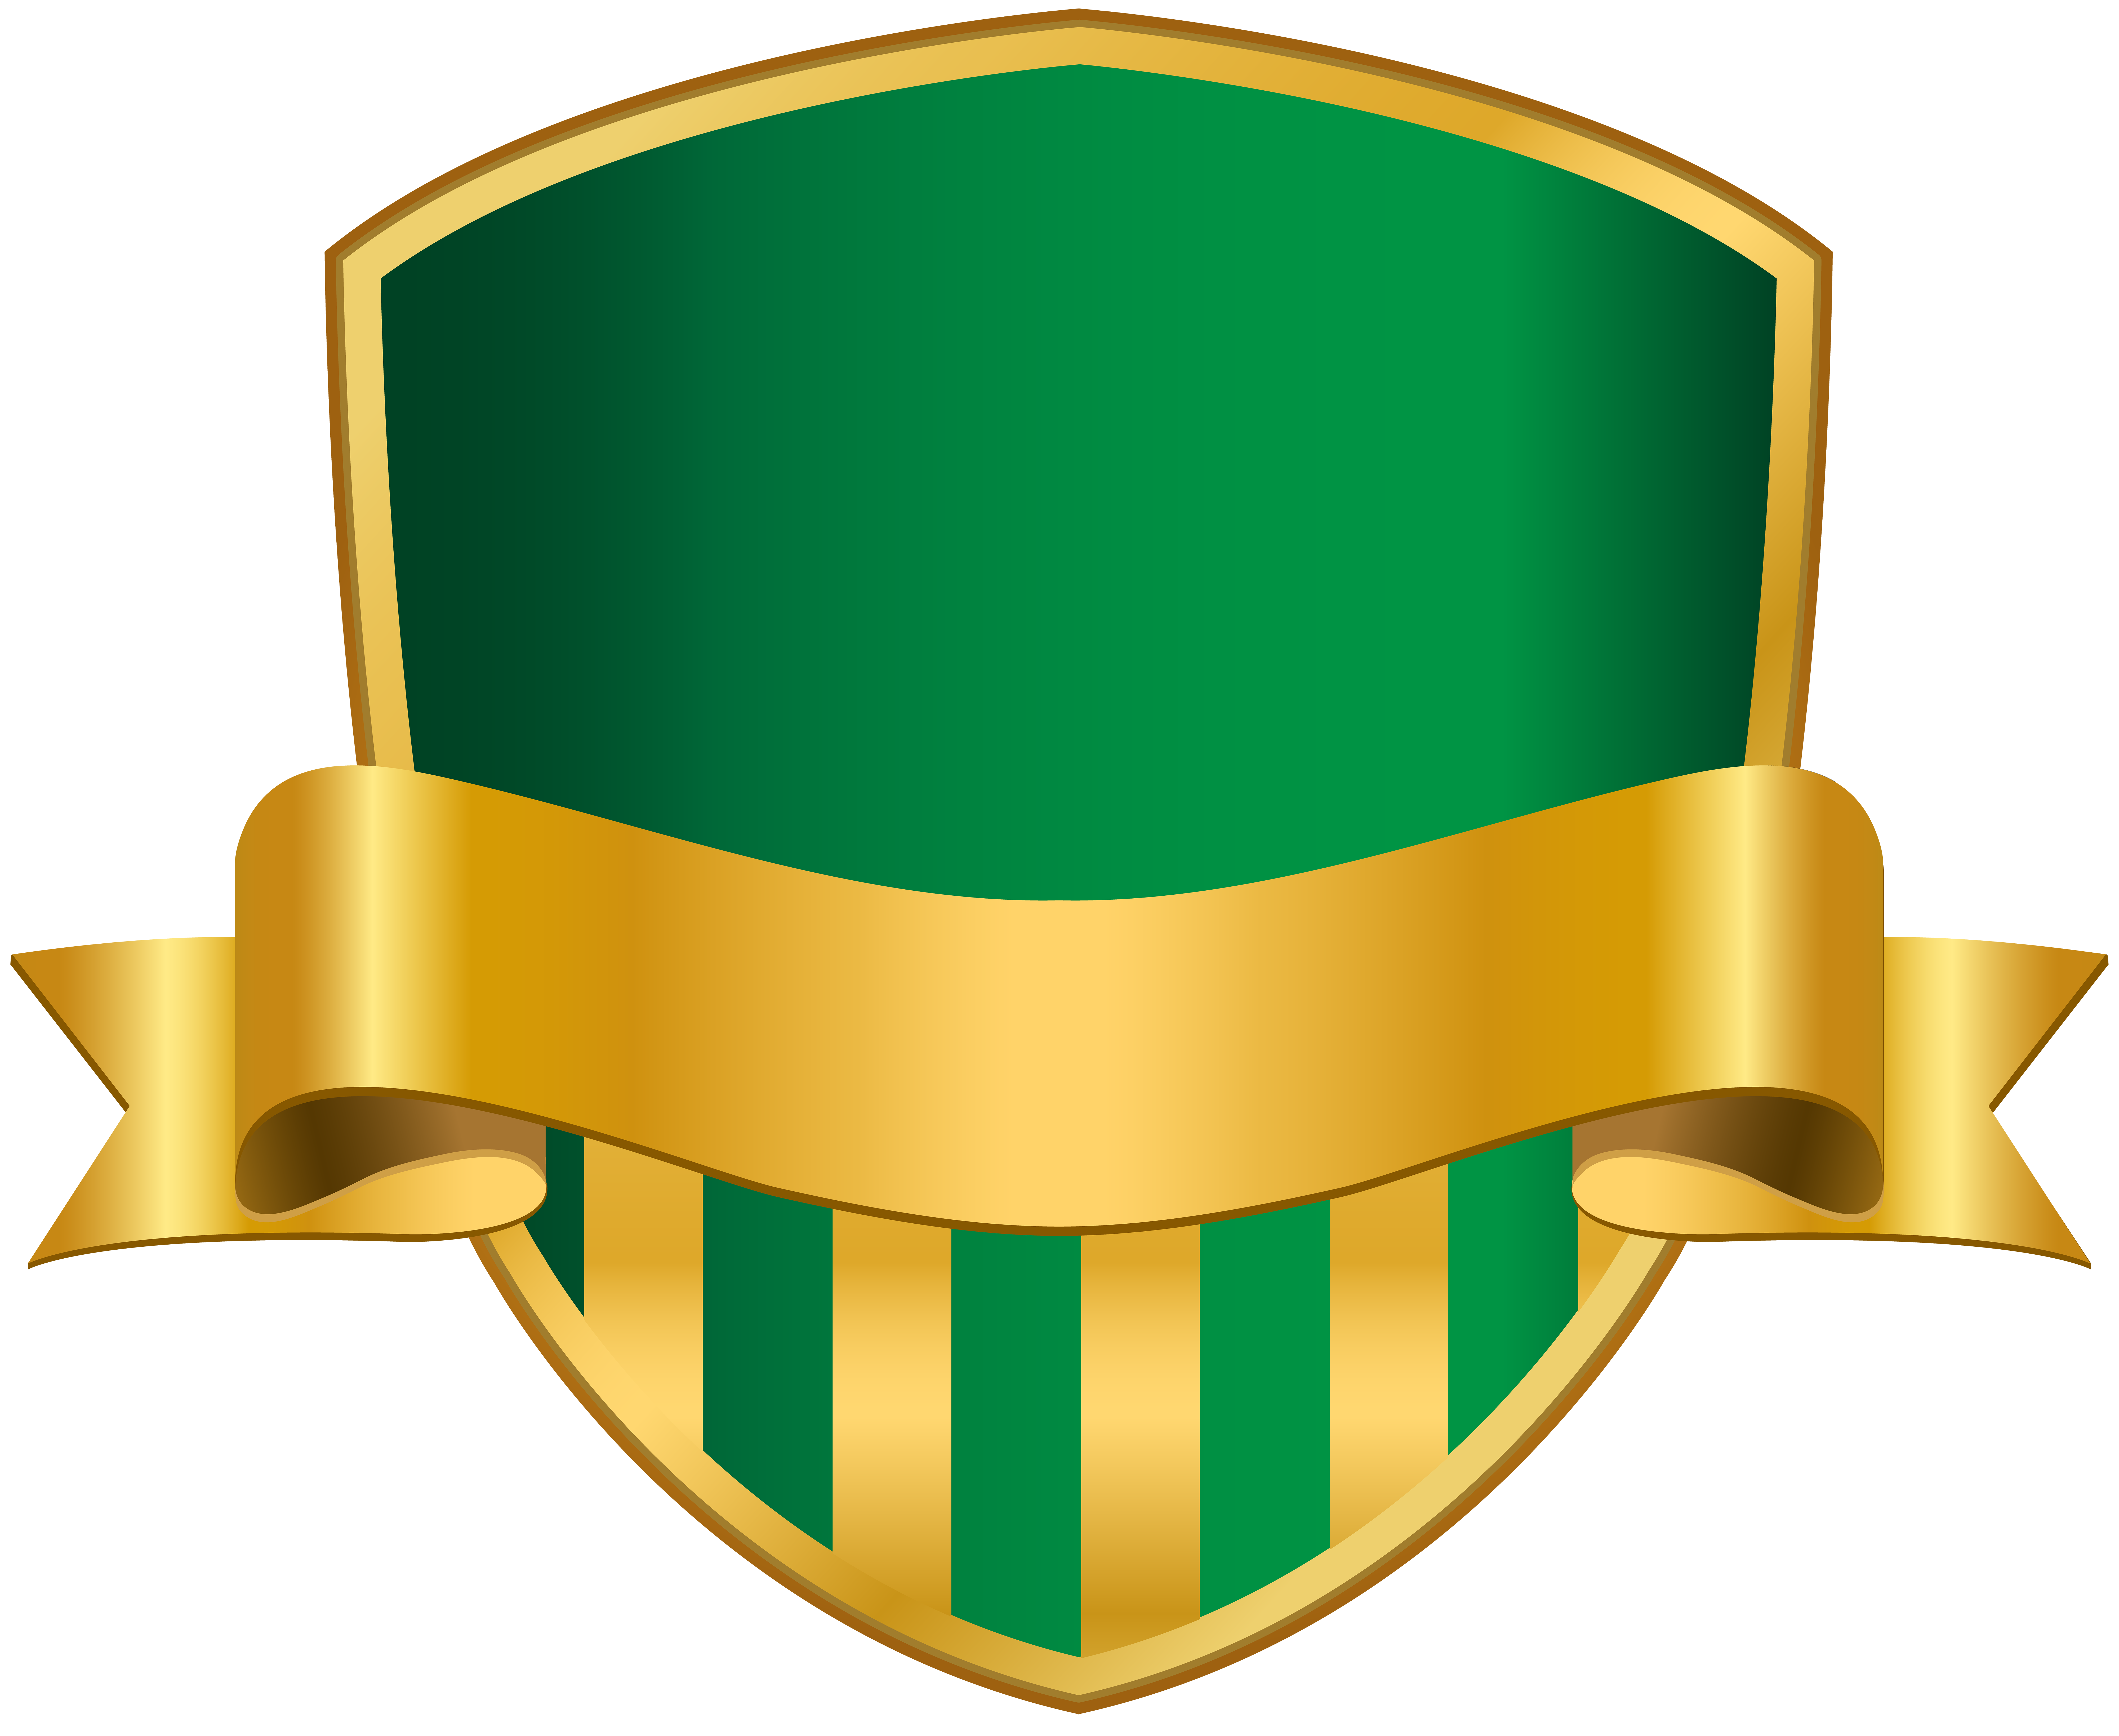 Badge with banner png. Clipart shield green